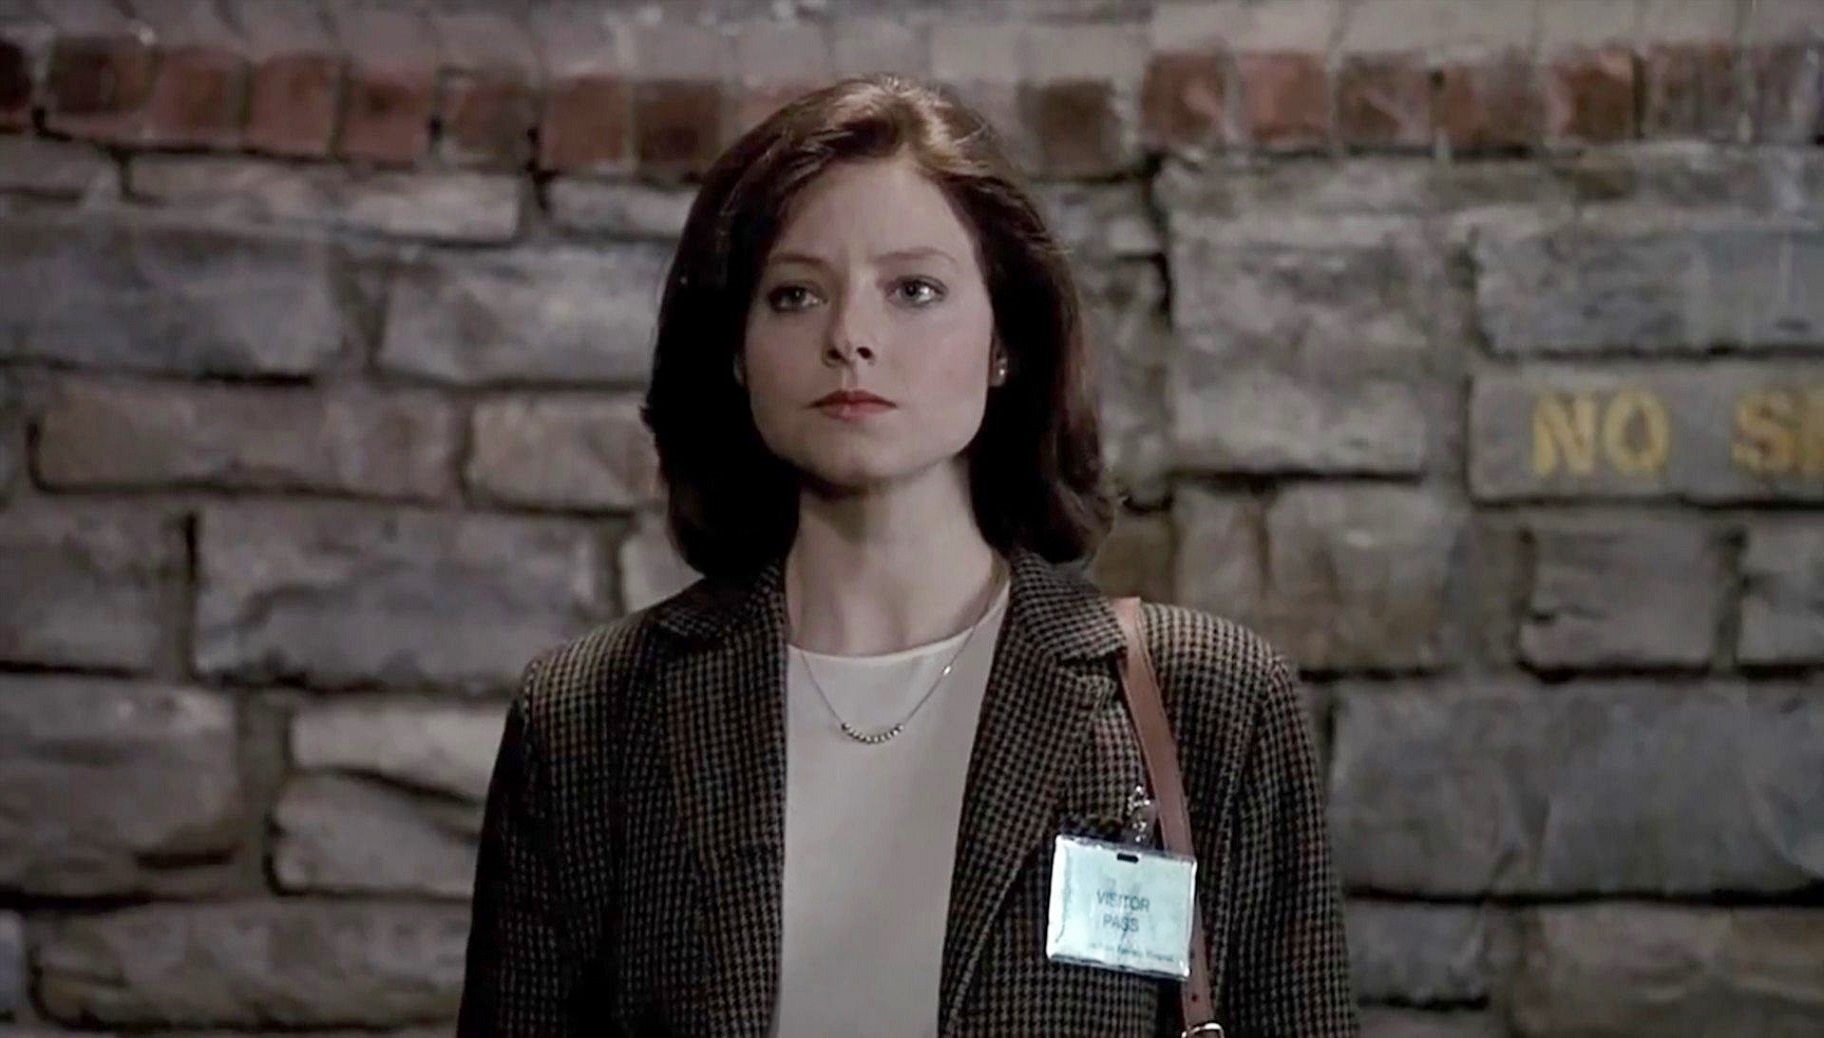 Trainee FBI agent Clarice Starling (Jodie Foster) in The Silence of the Lambs (1991)